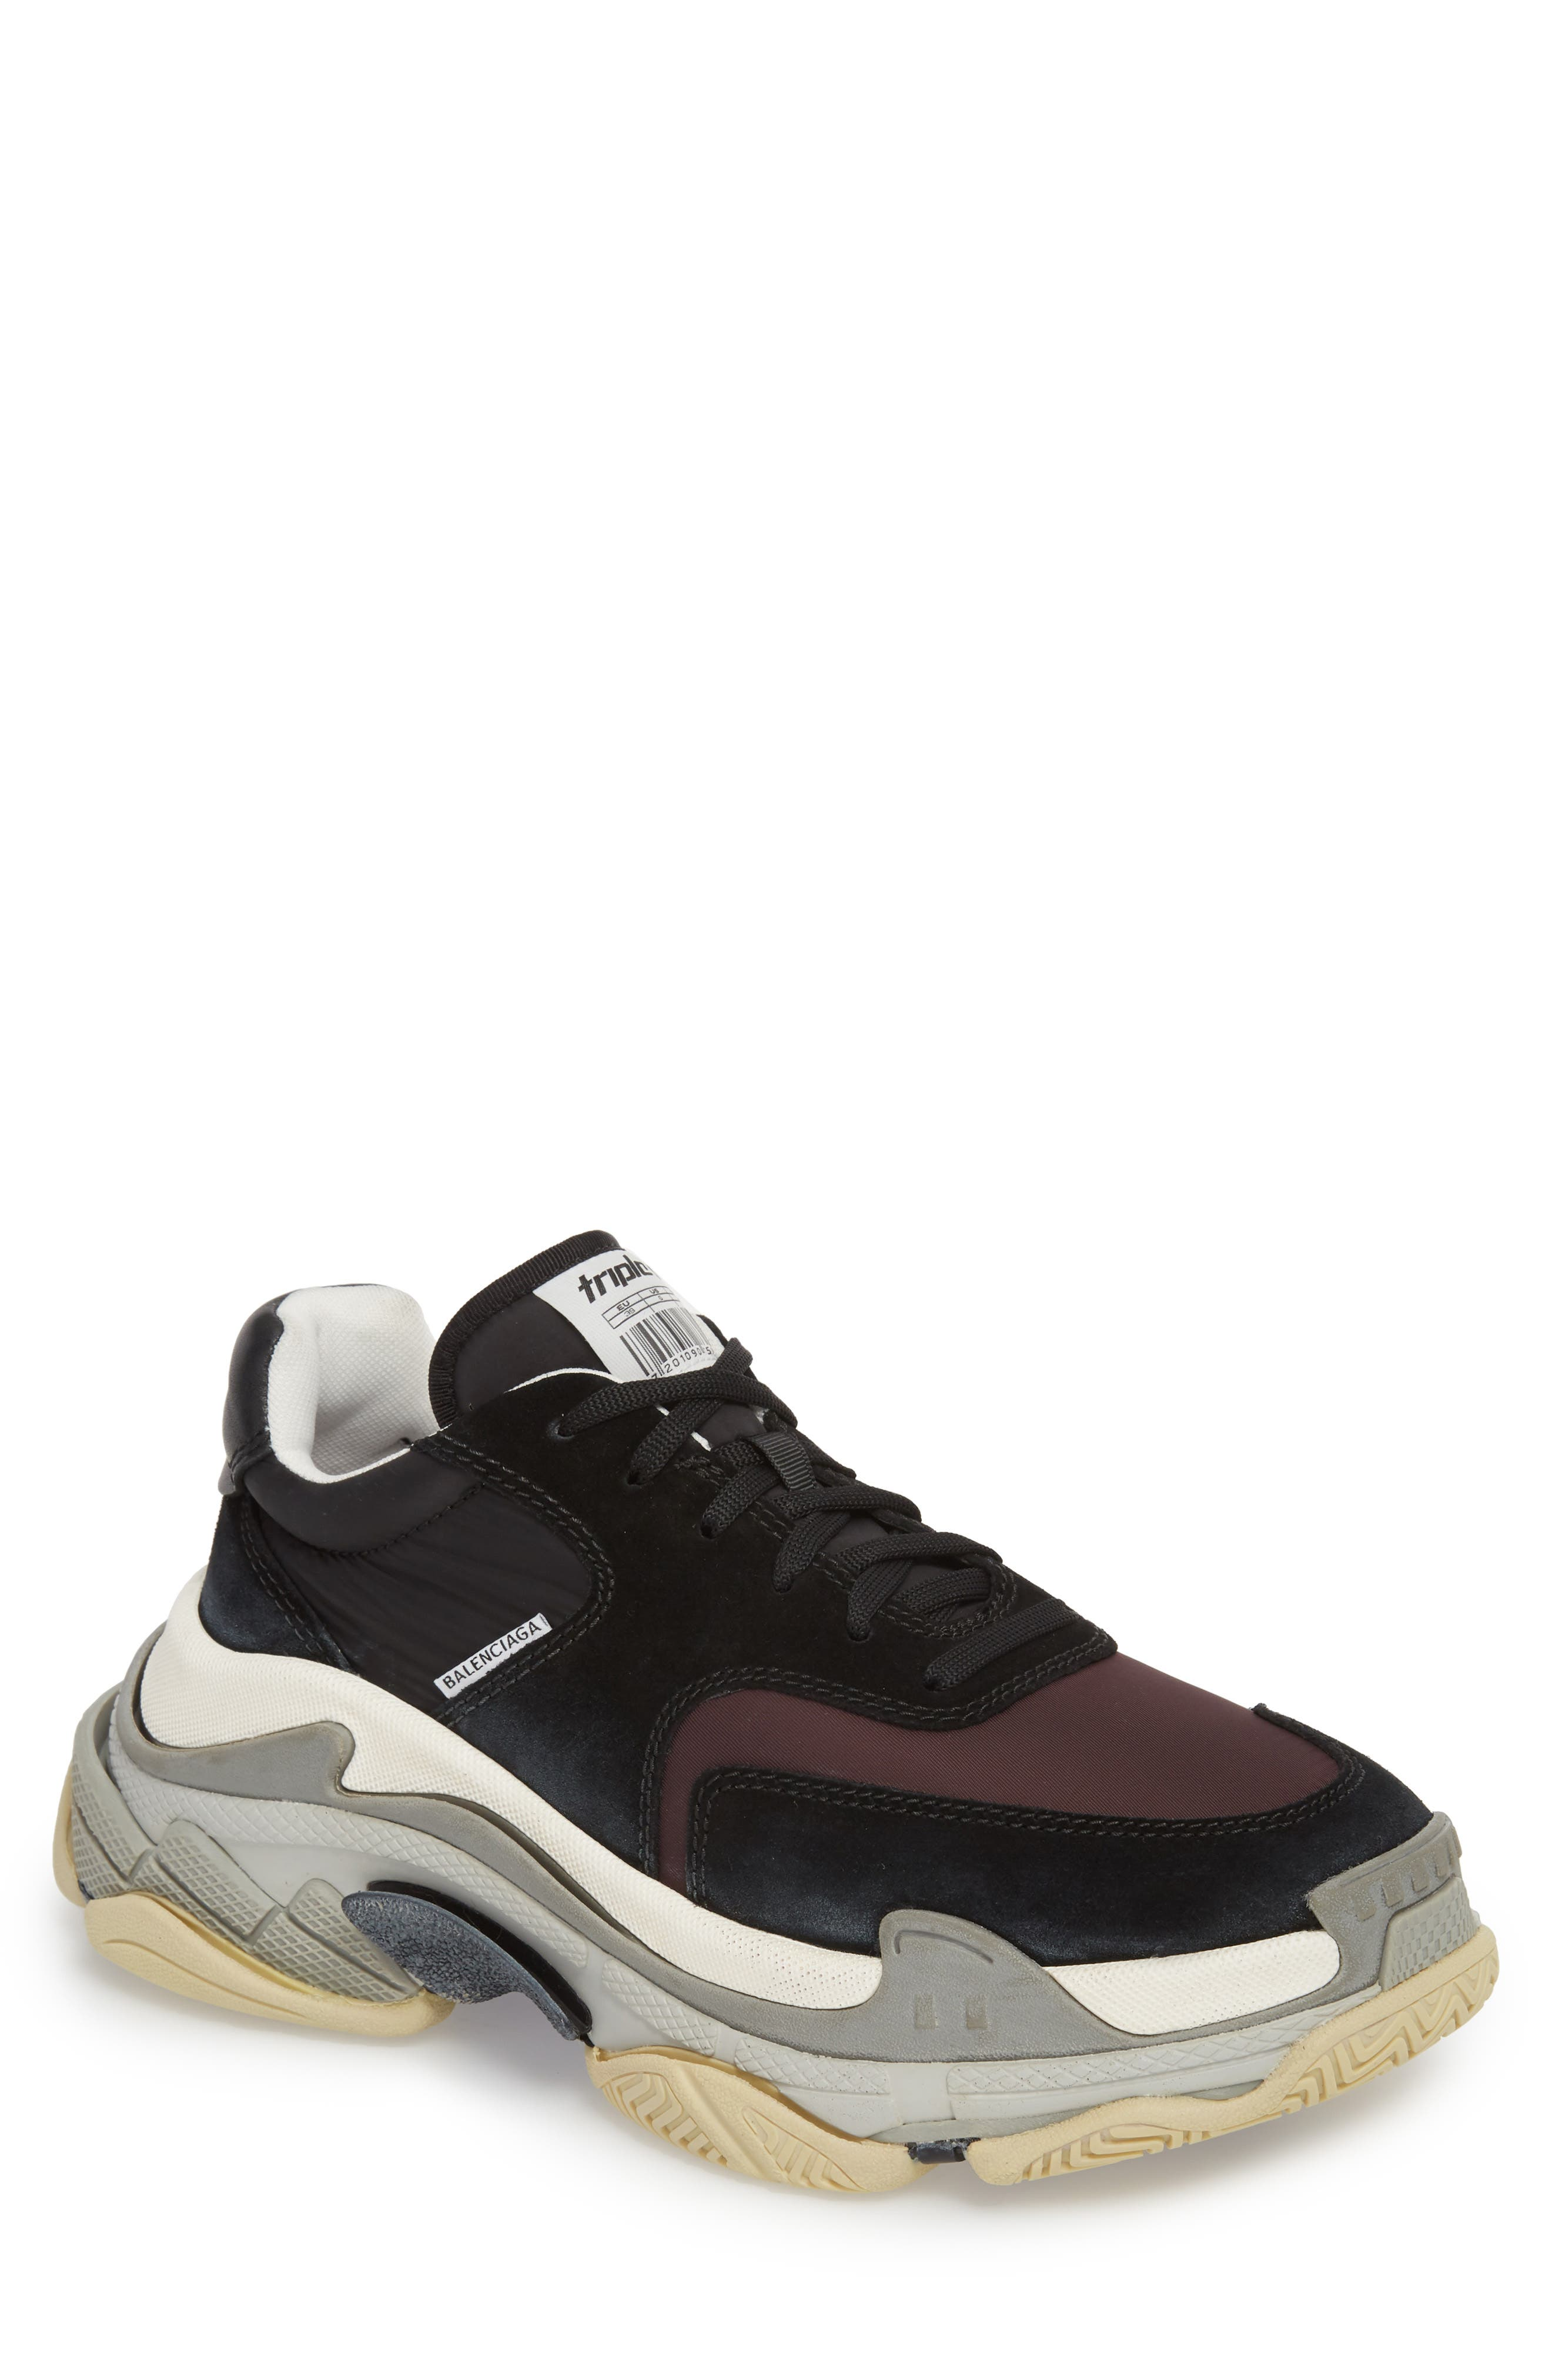 Triple S Retro Sneaker by Balenciaga